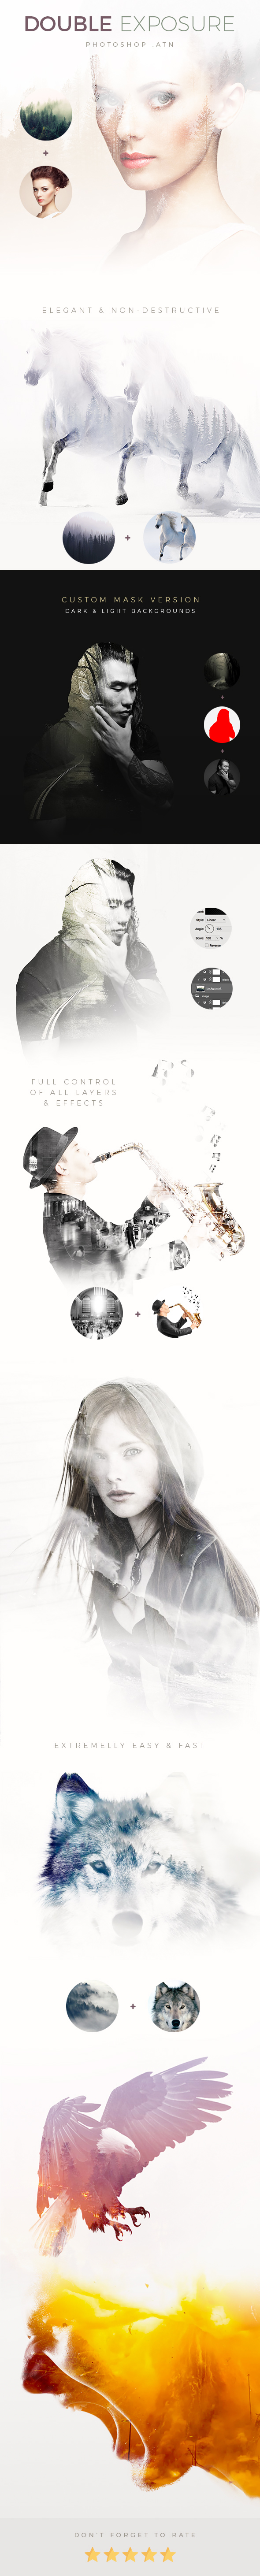 Elegant Double Exposure - Light & Dark Background - Photo Effects Actions